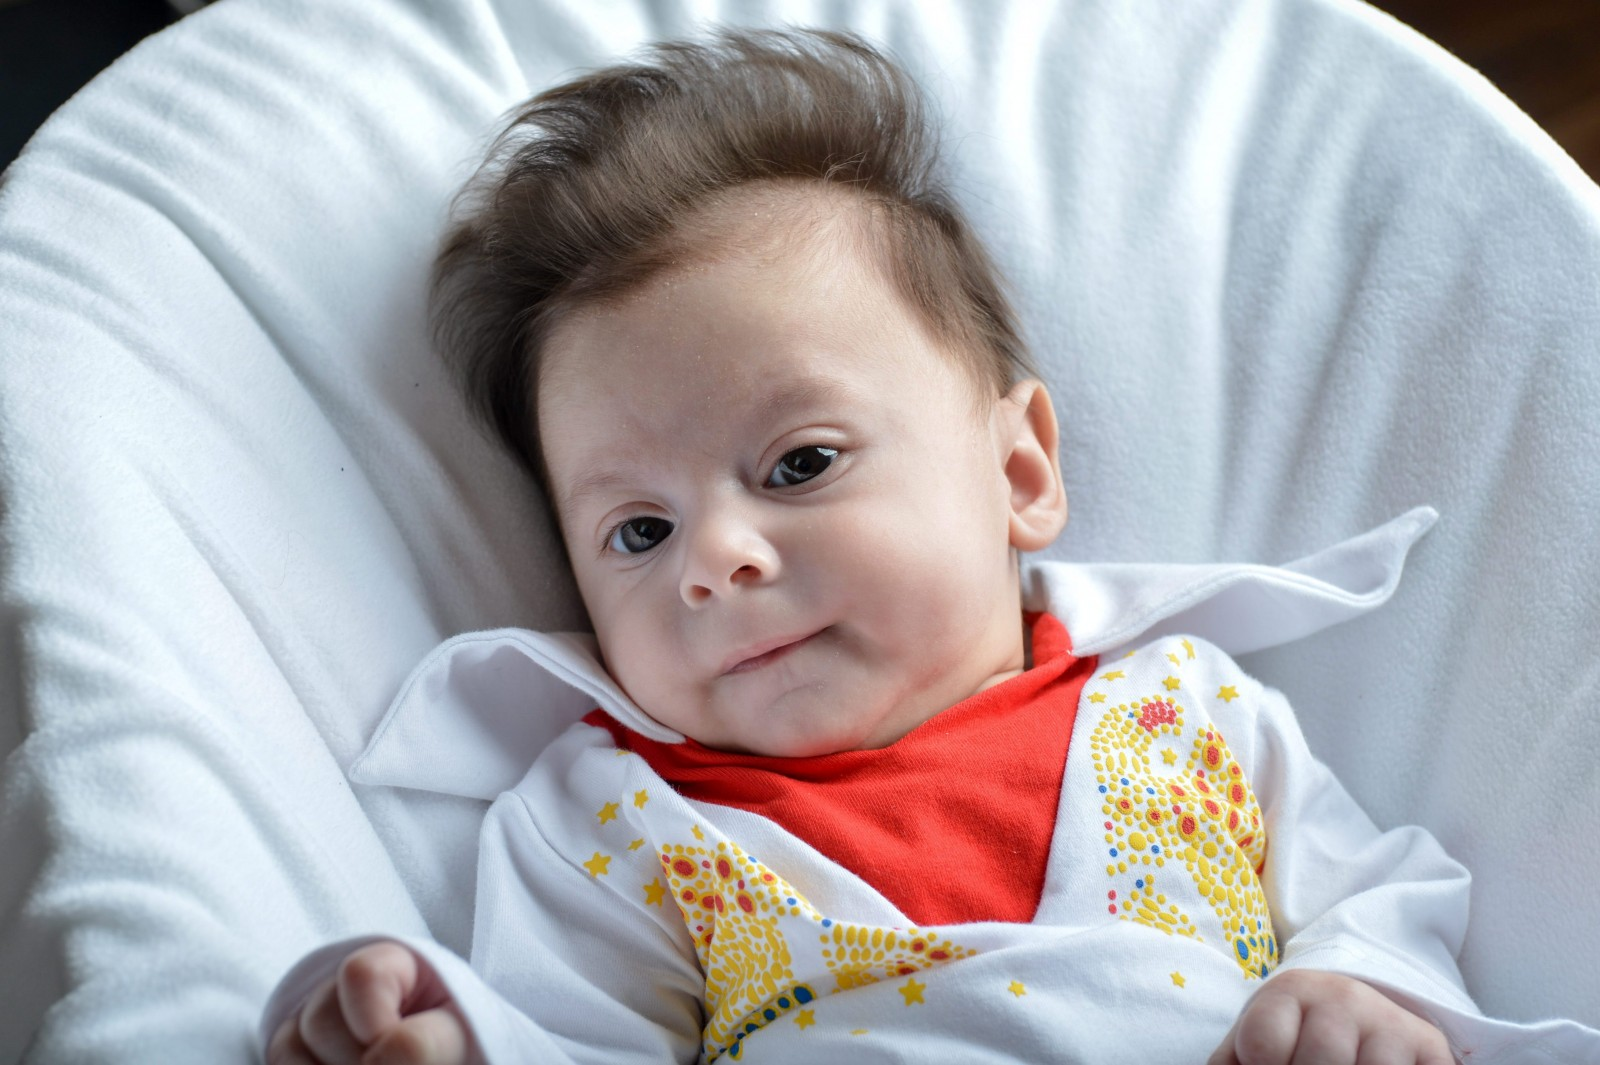 This baby left his parents all shook up with his permanent Elvis-like quiff